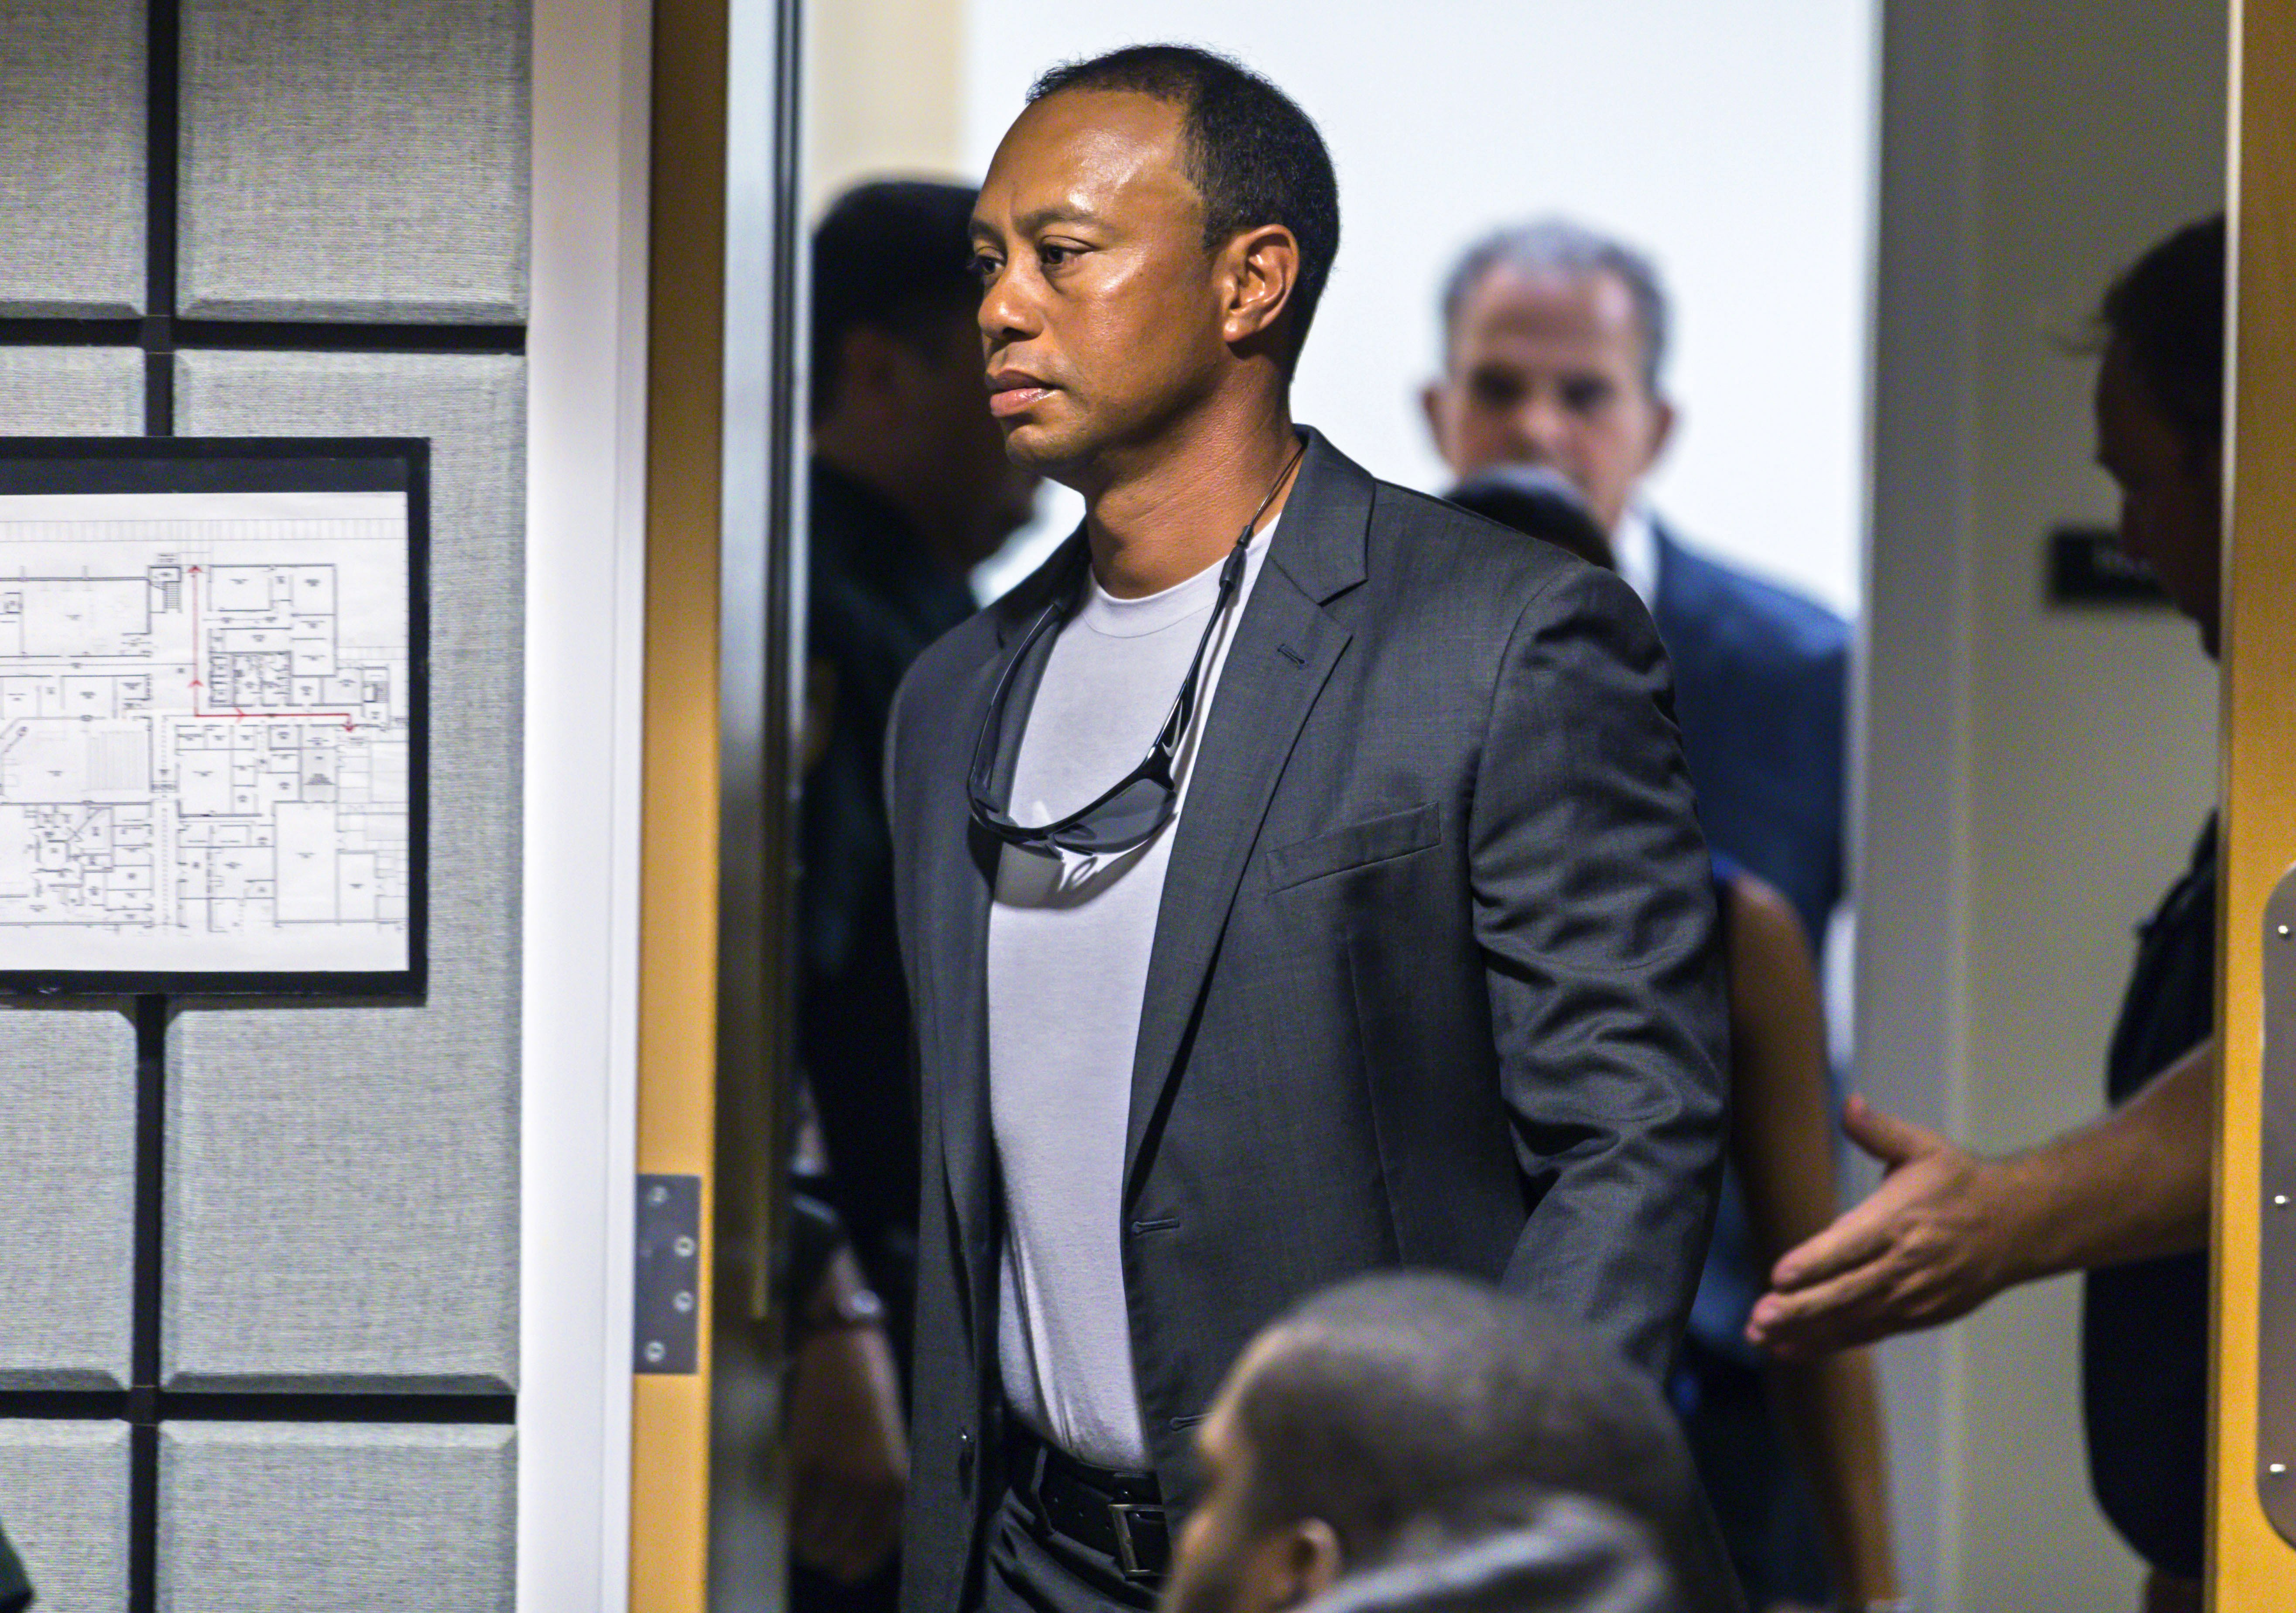 Tiger Woods enters Palm Beach County court October 27, 2017. | Photo: GettyImages